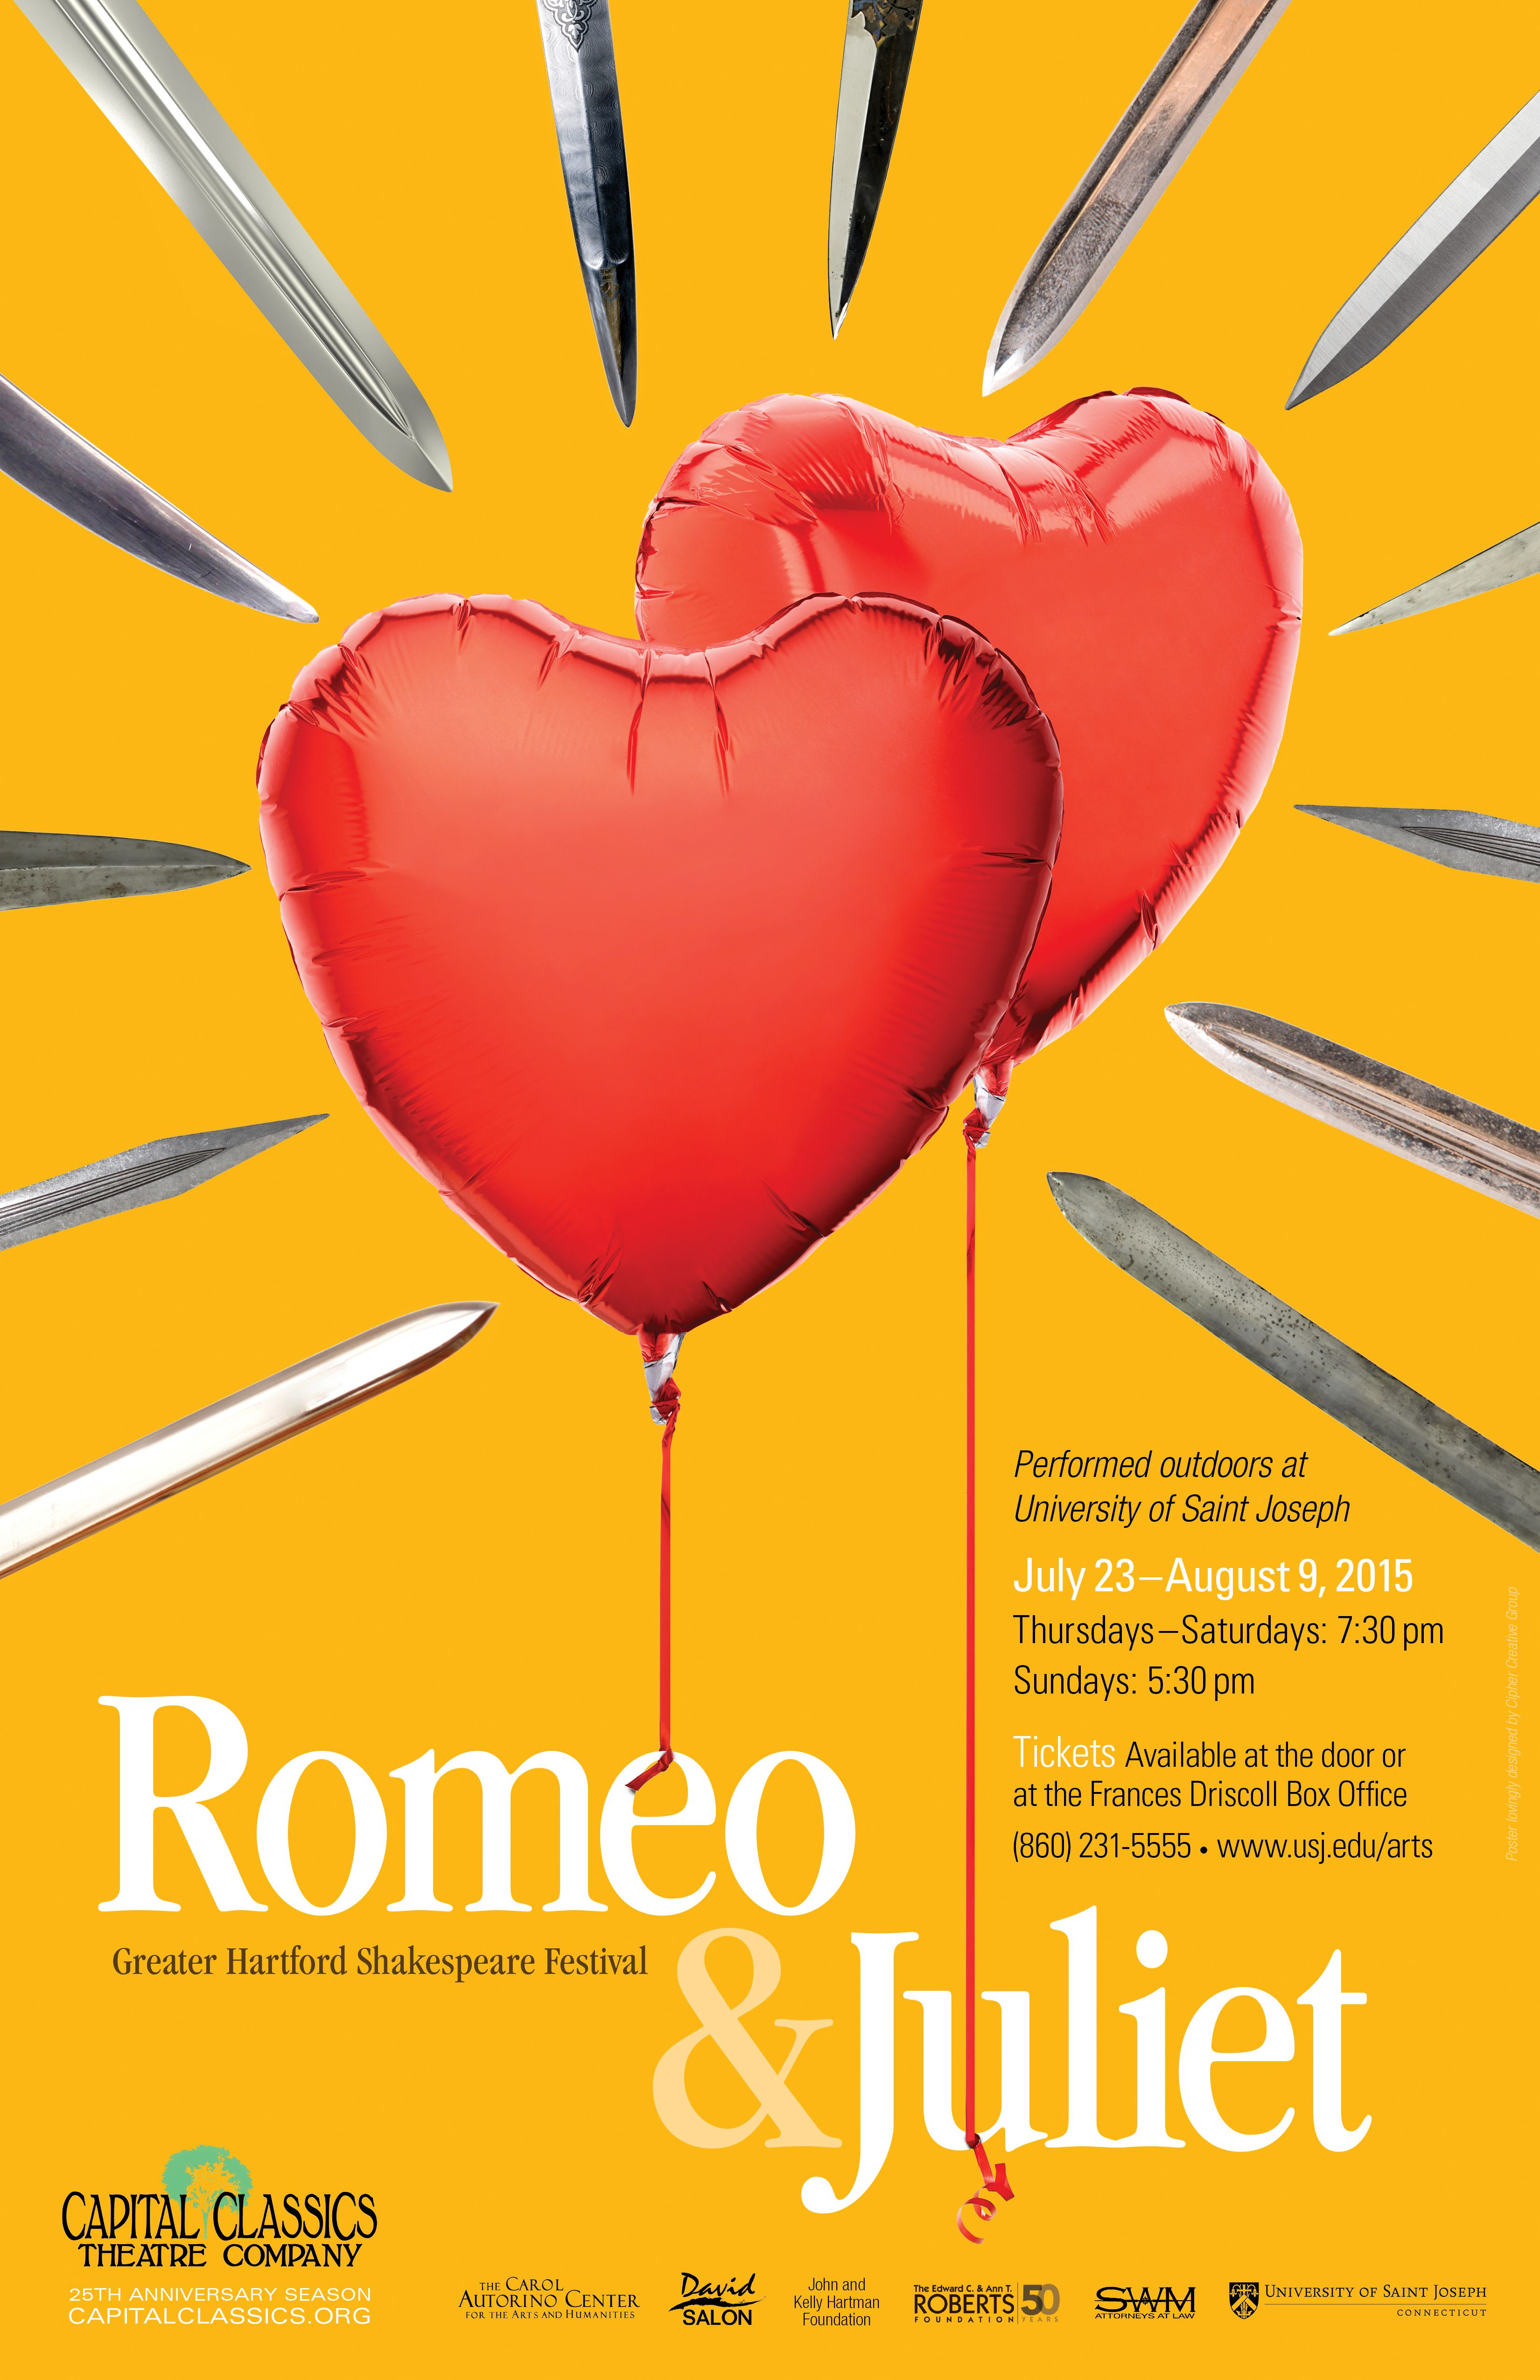 Capital Classics Shakespeare Festival Romeo Juliet Poster By Cipher Creative Group Romeo And Juliet Poster Romeo And Juliet Shakespeare